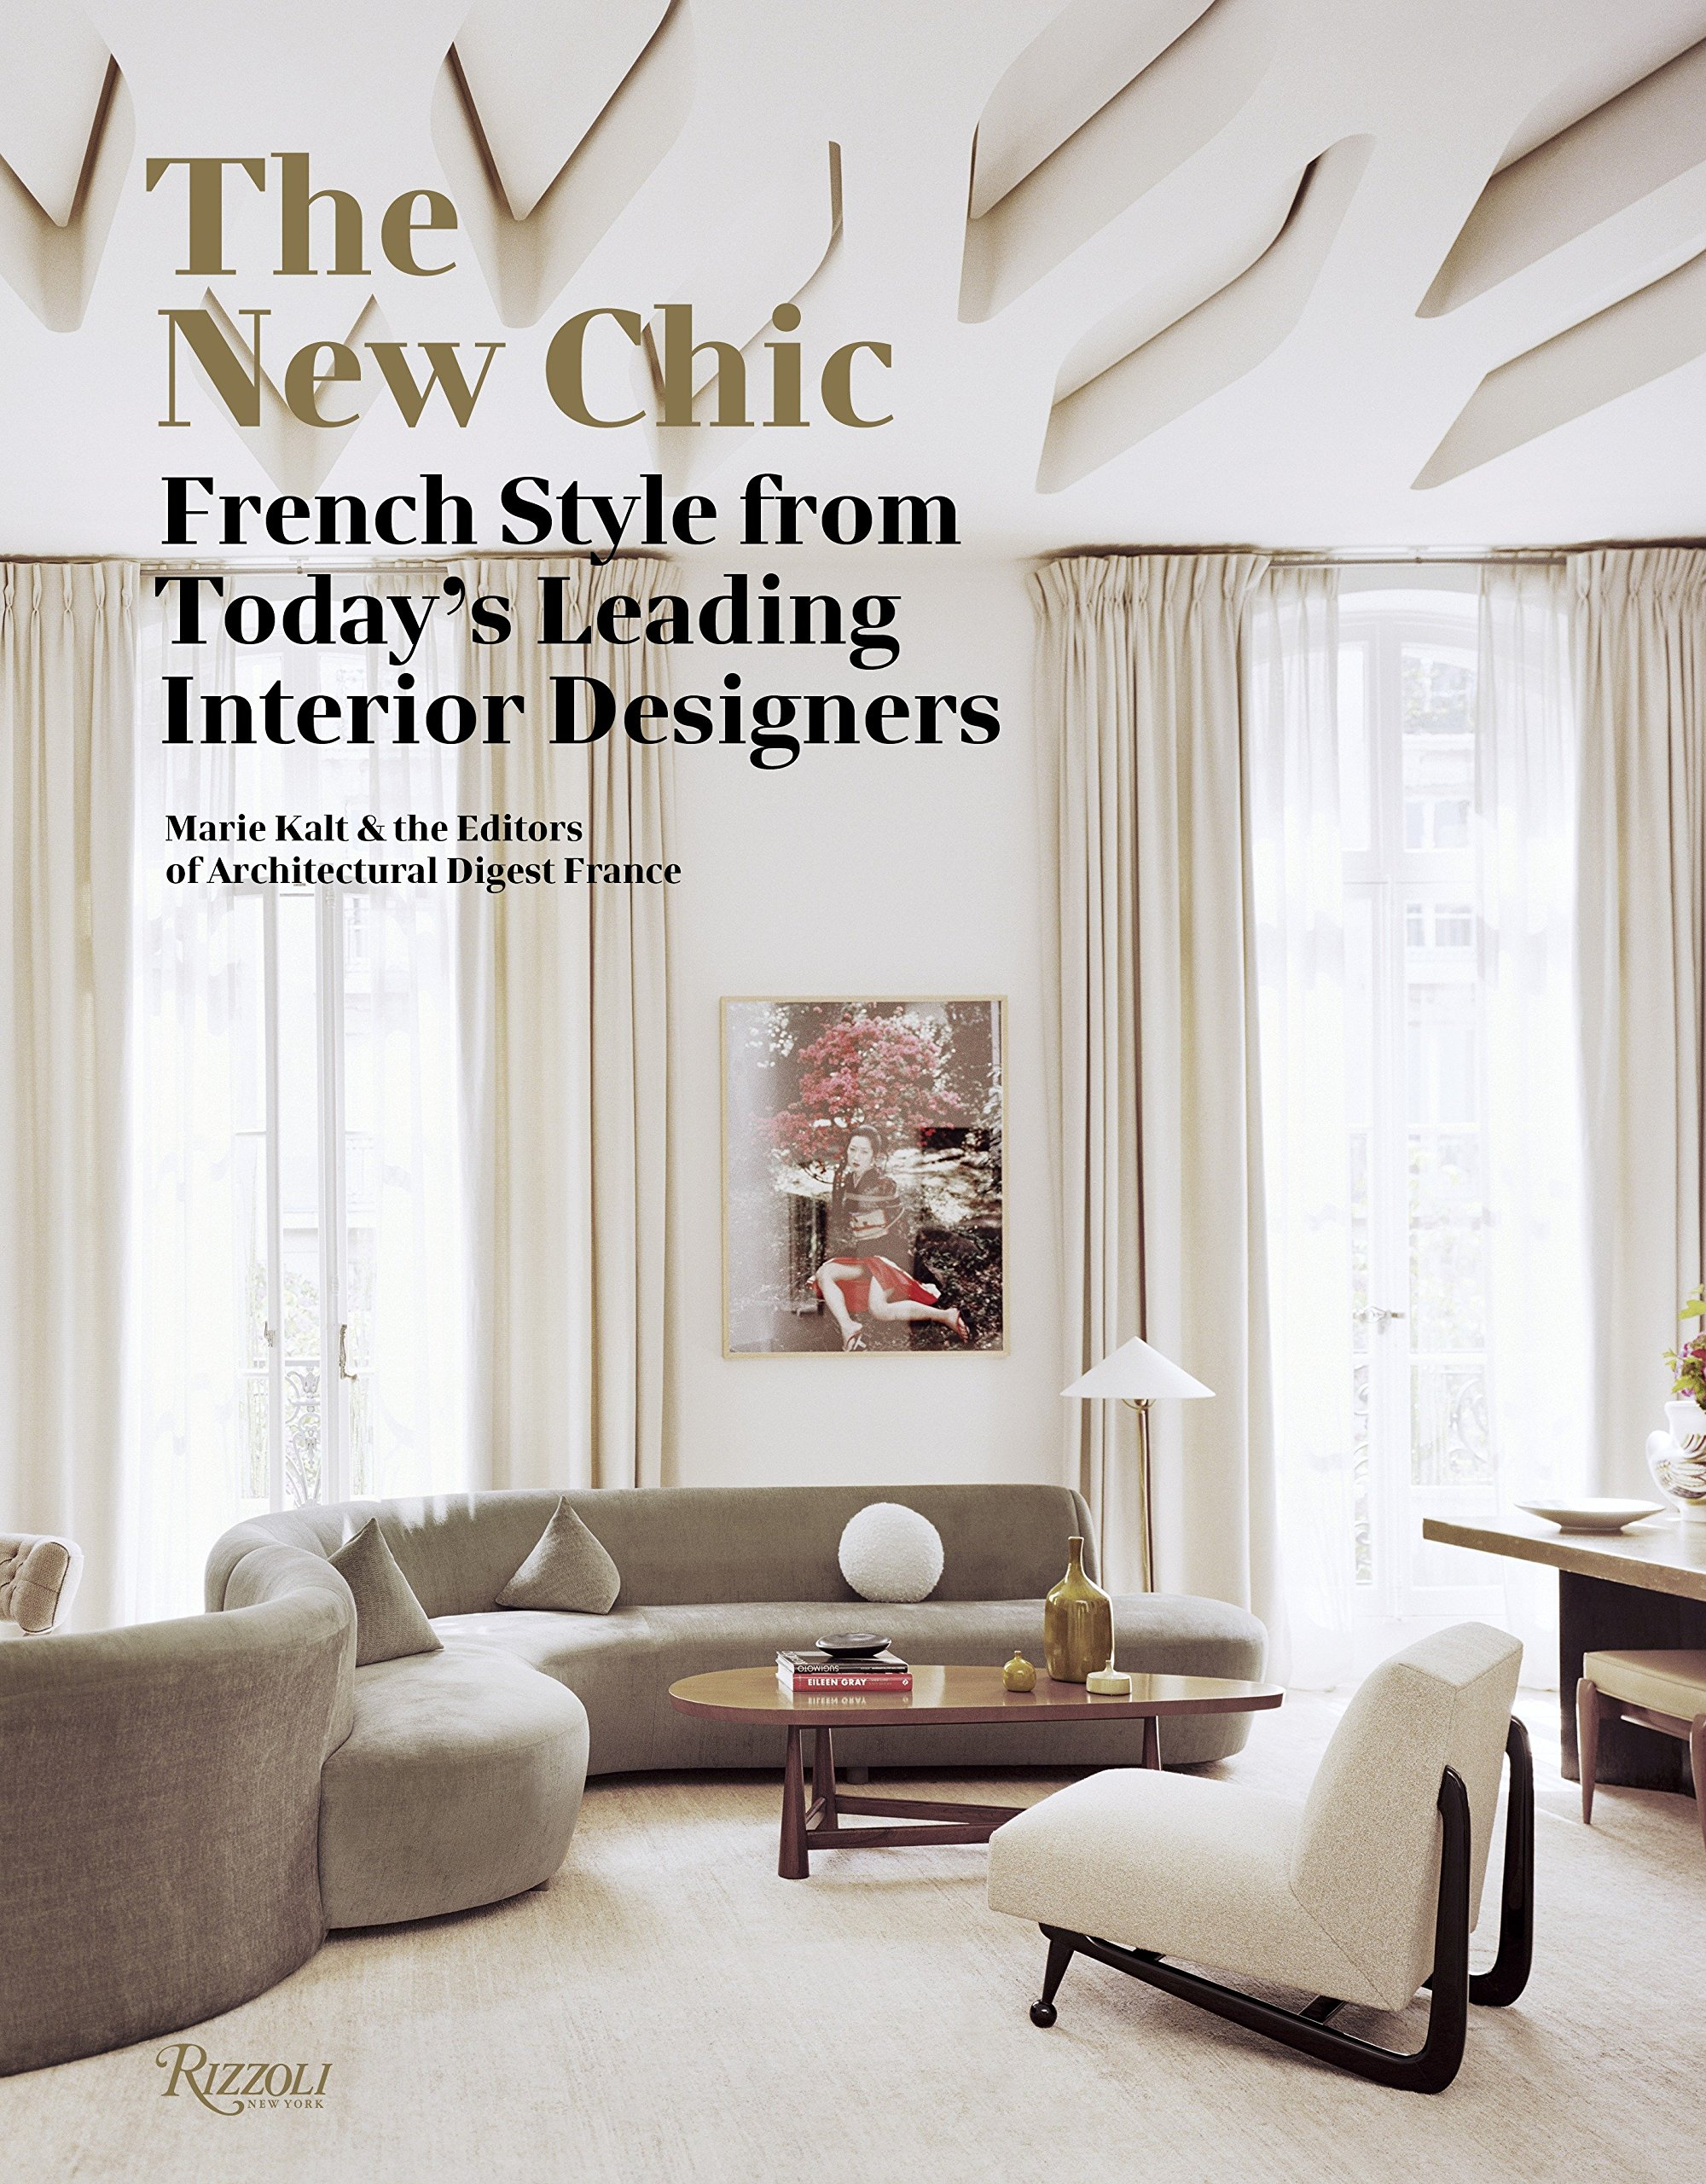 famous interior designers famous interior designers 2017 The New Chic: French Style From Todayu0027s Leading Interior Designers  Hardcover u2013 April 25, 2017